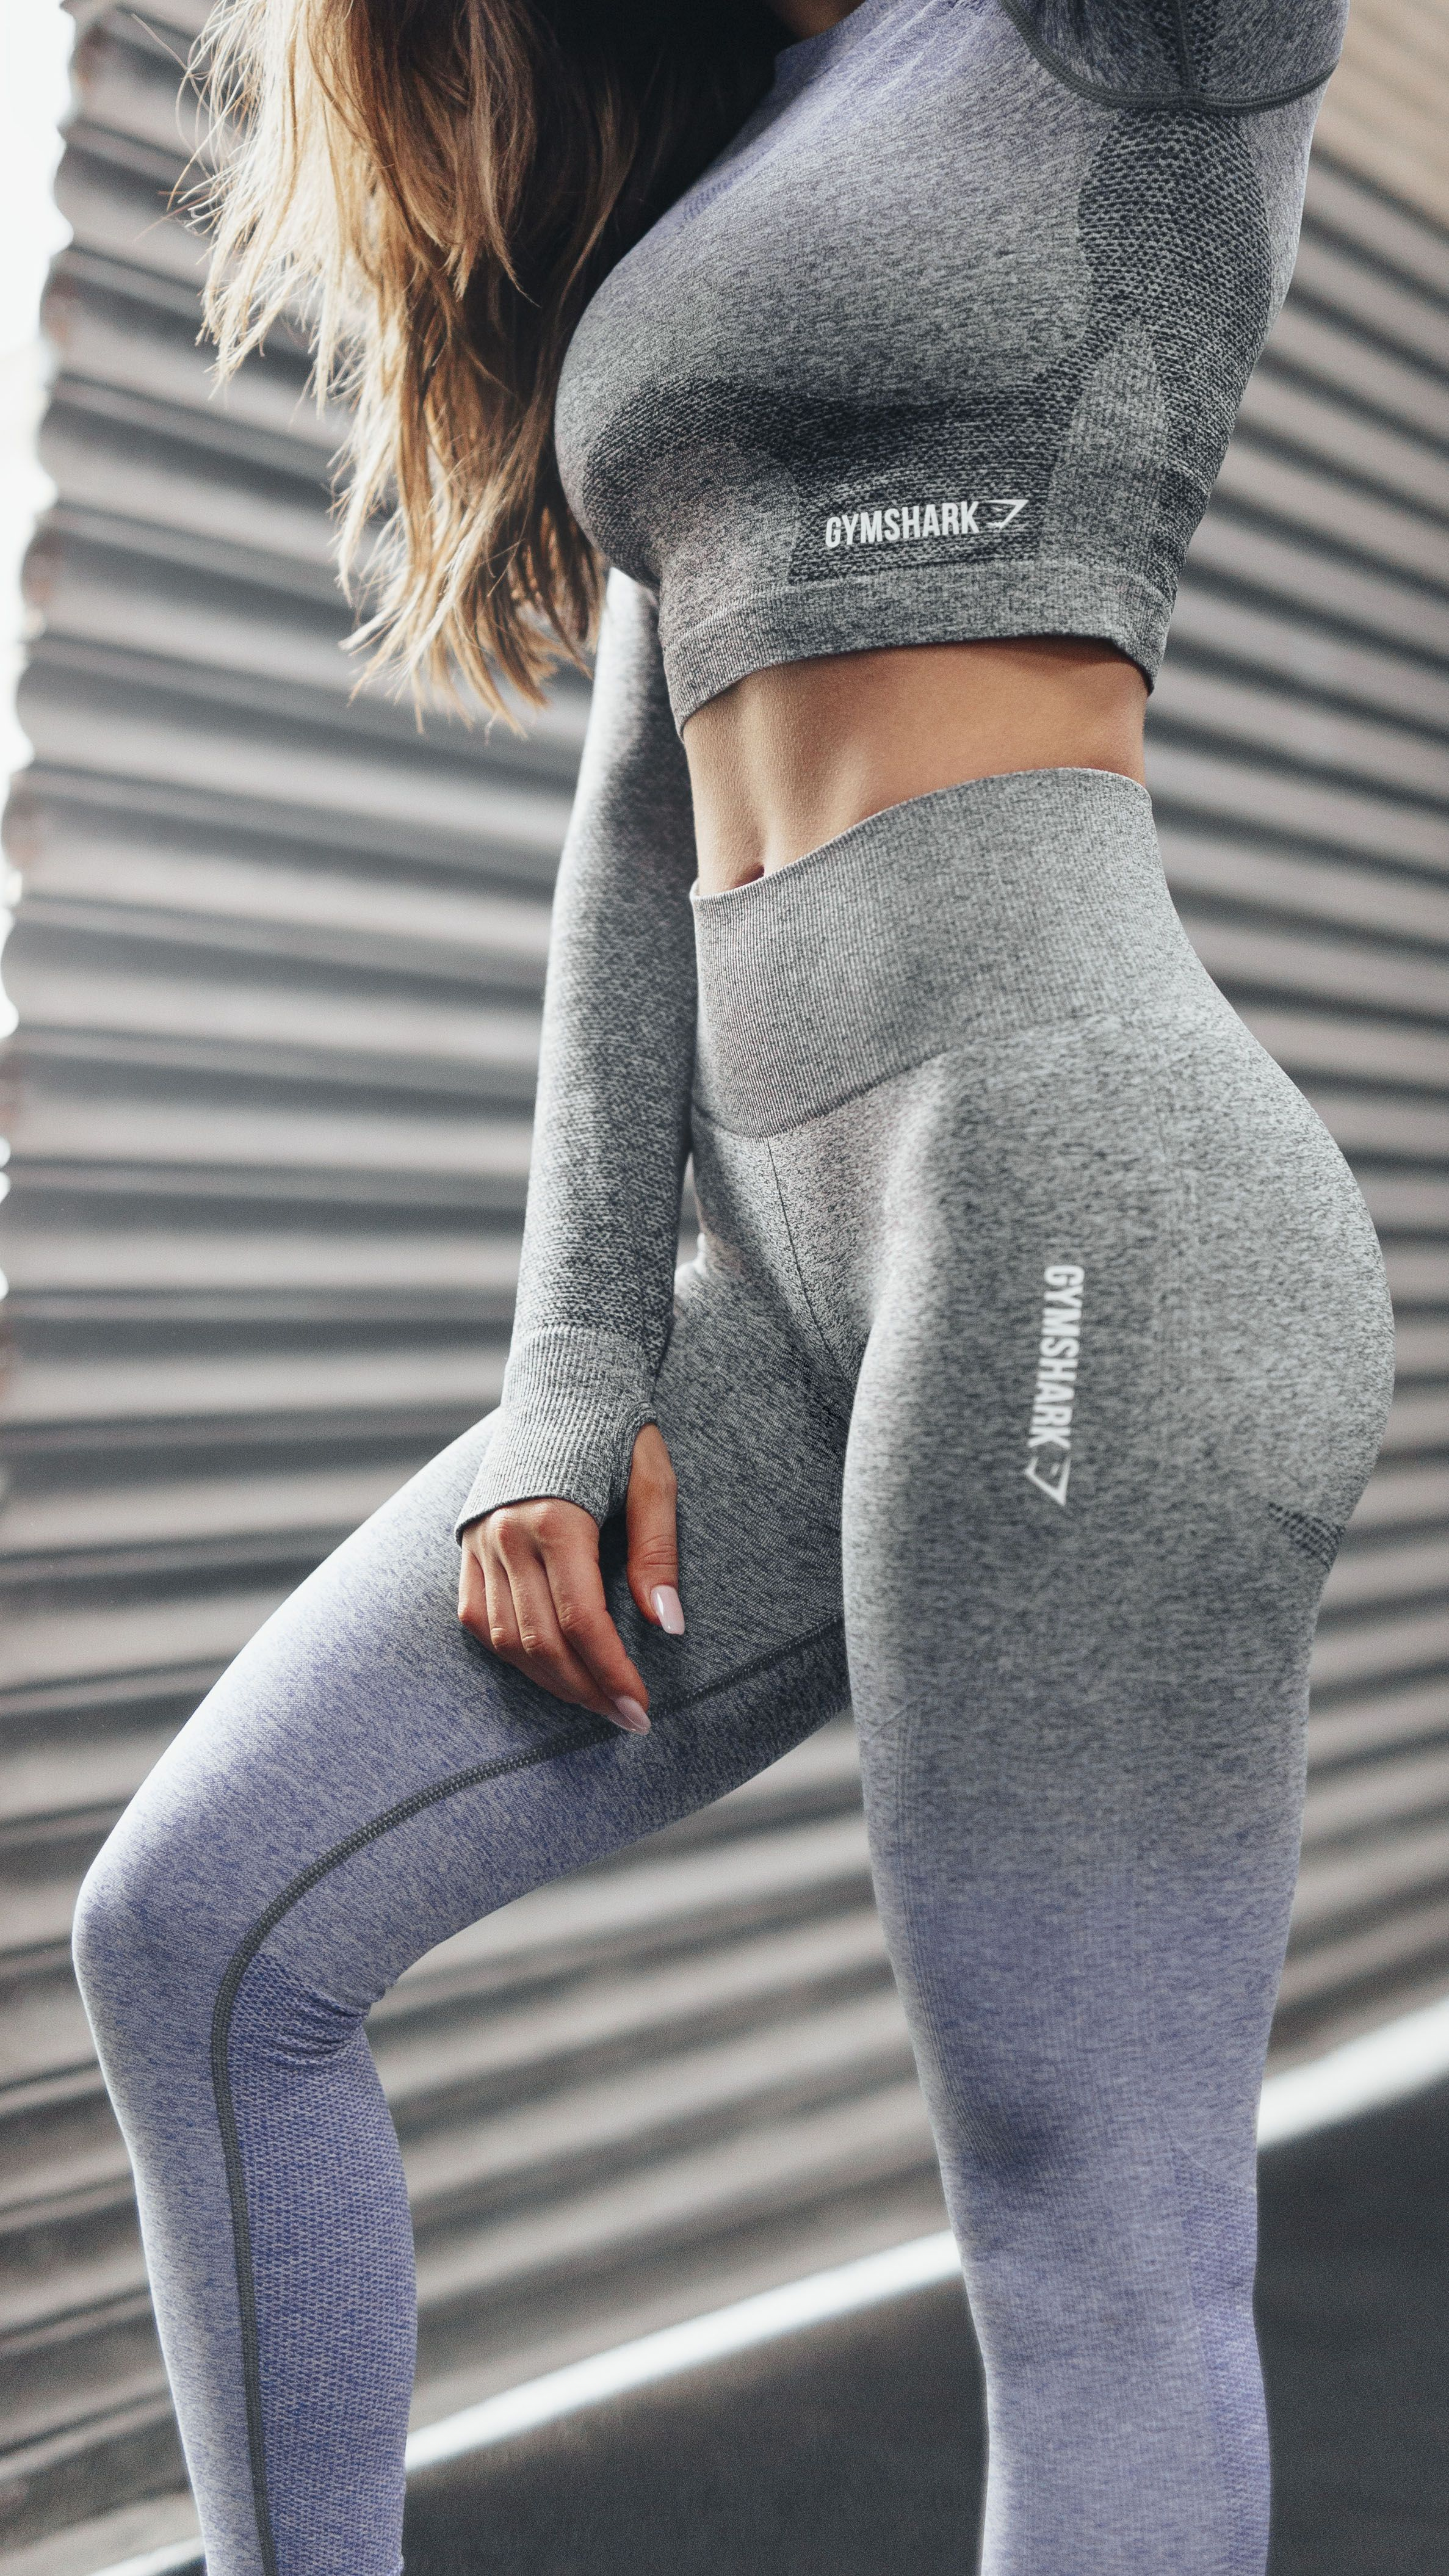 c9aff10f30de9 The Gymshark Ombre Seamless' soft stretch fabric provides a close, yet  comfortable physique-enhancing fit. Coming soon in Indigo and Black.